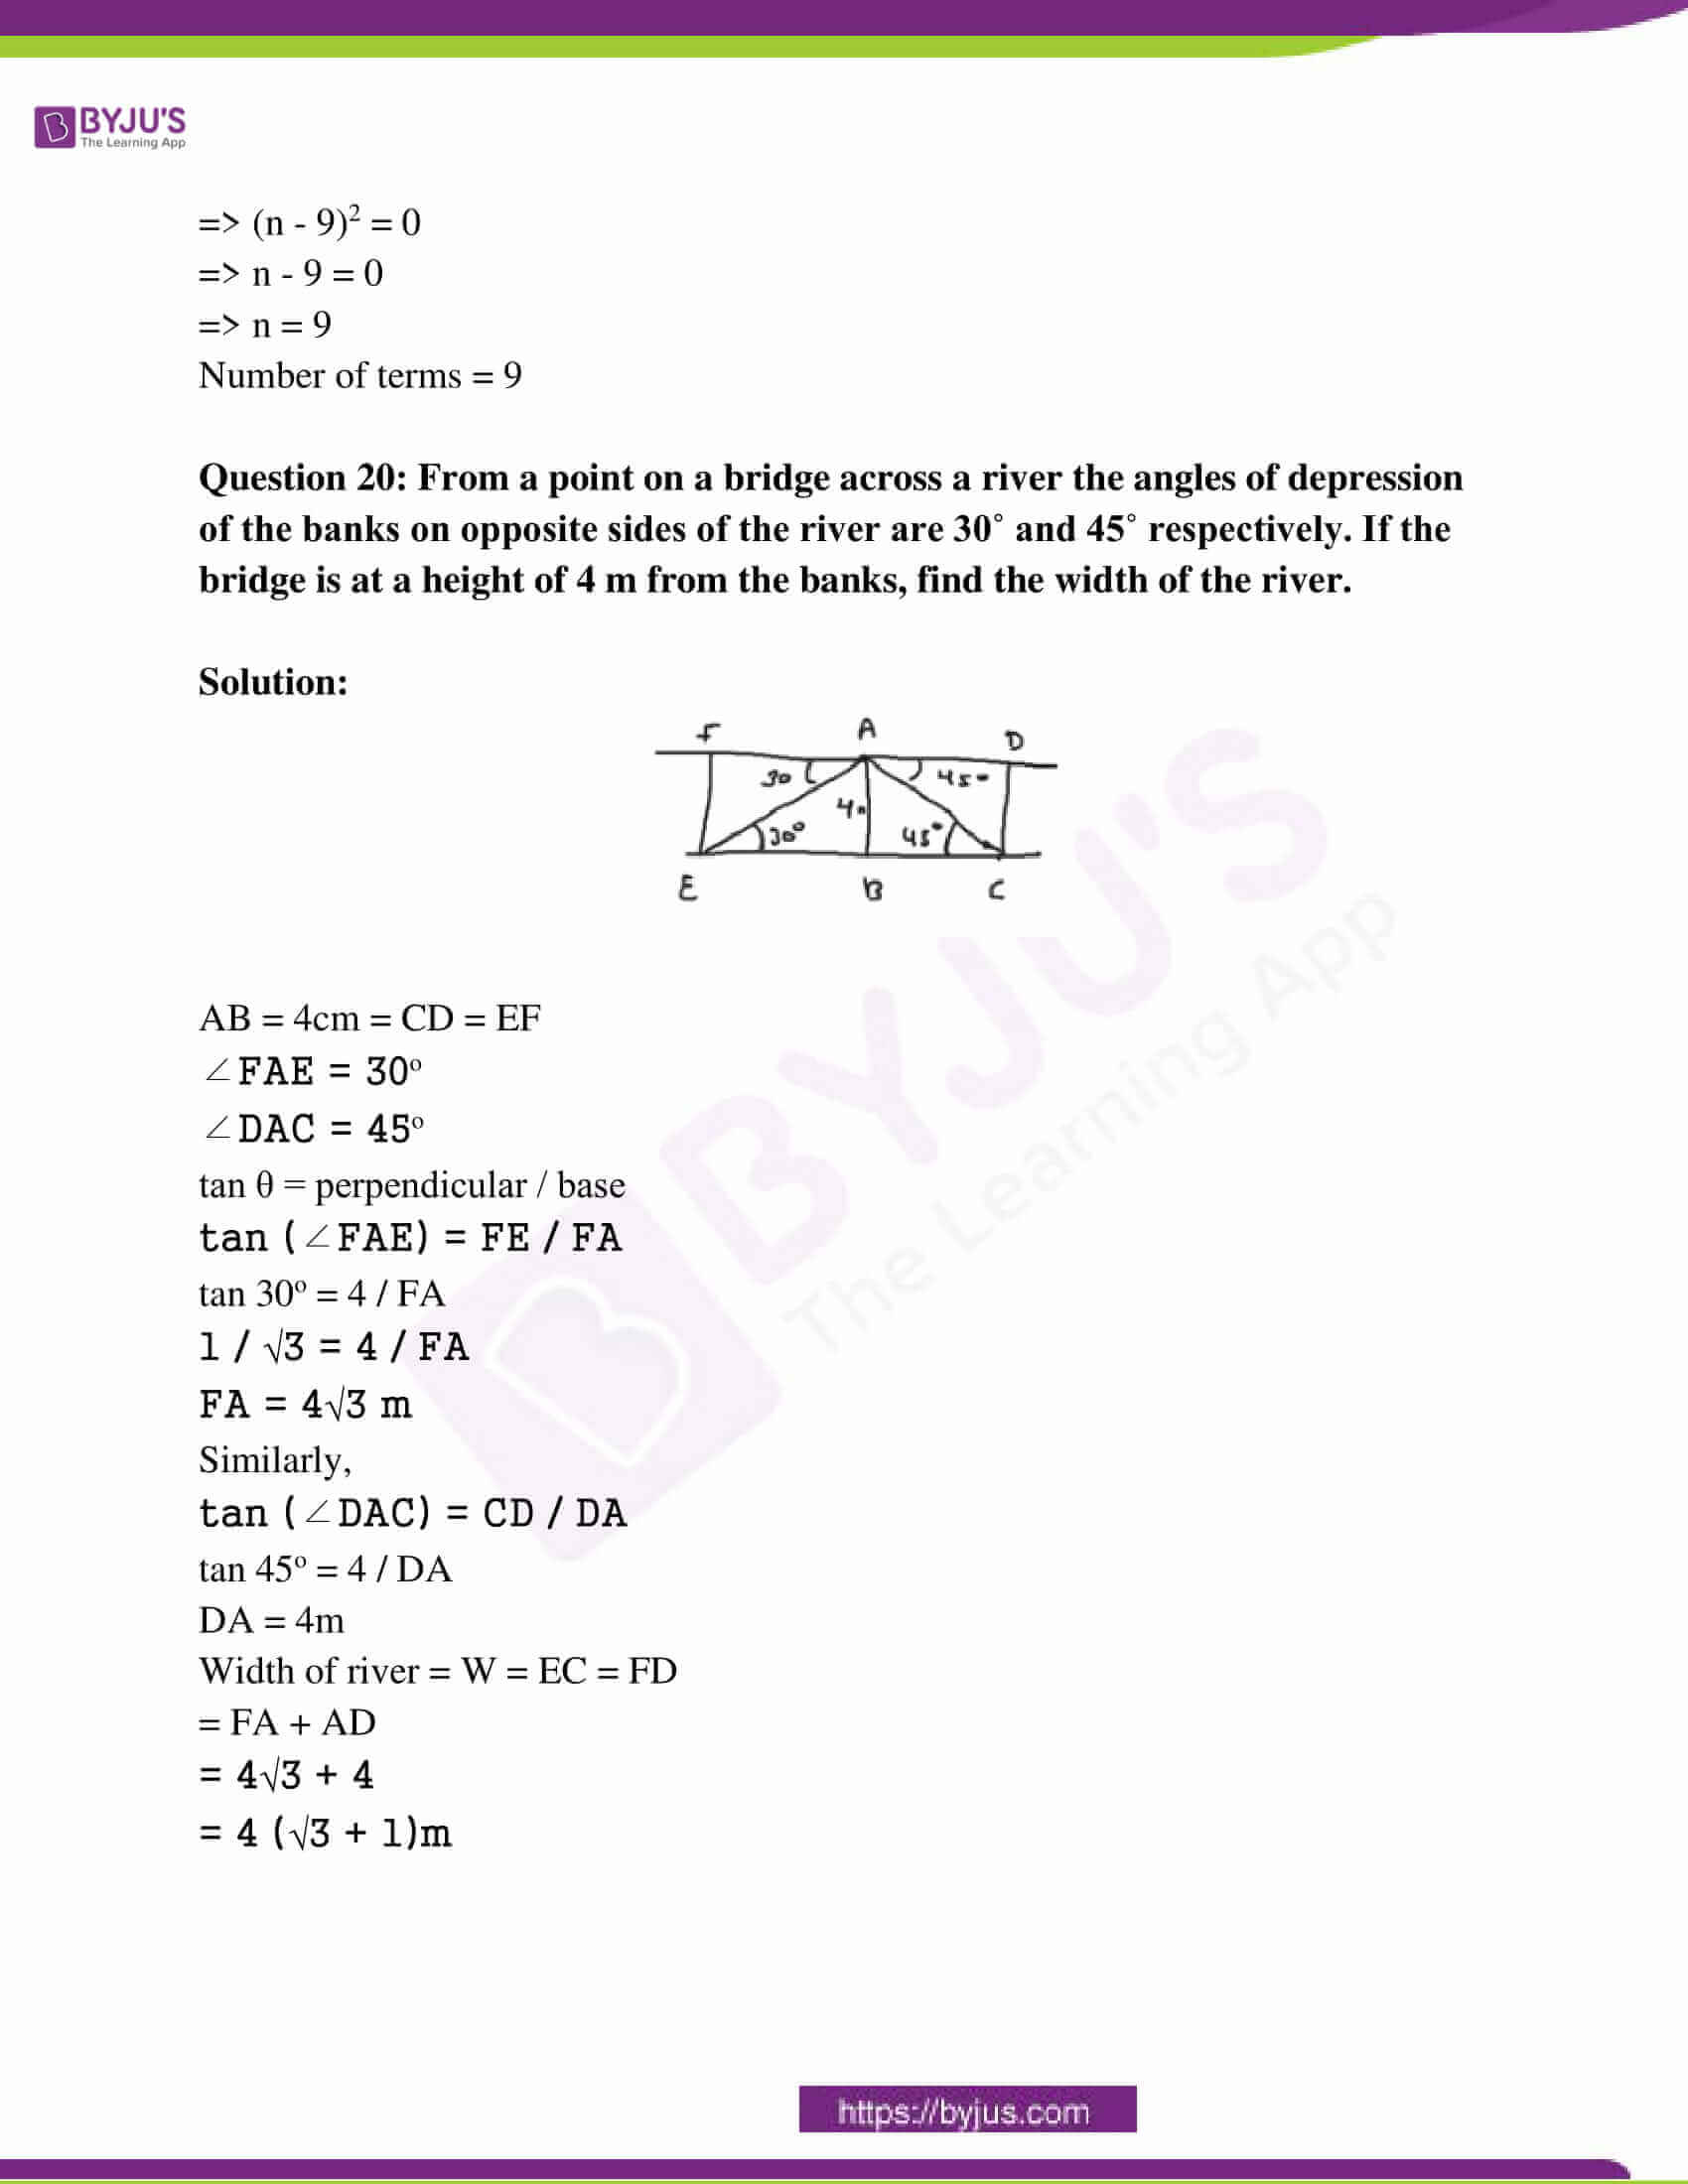 rajasthan board class 10 examination question paper sol march 2015 10